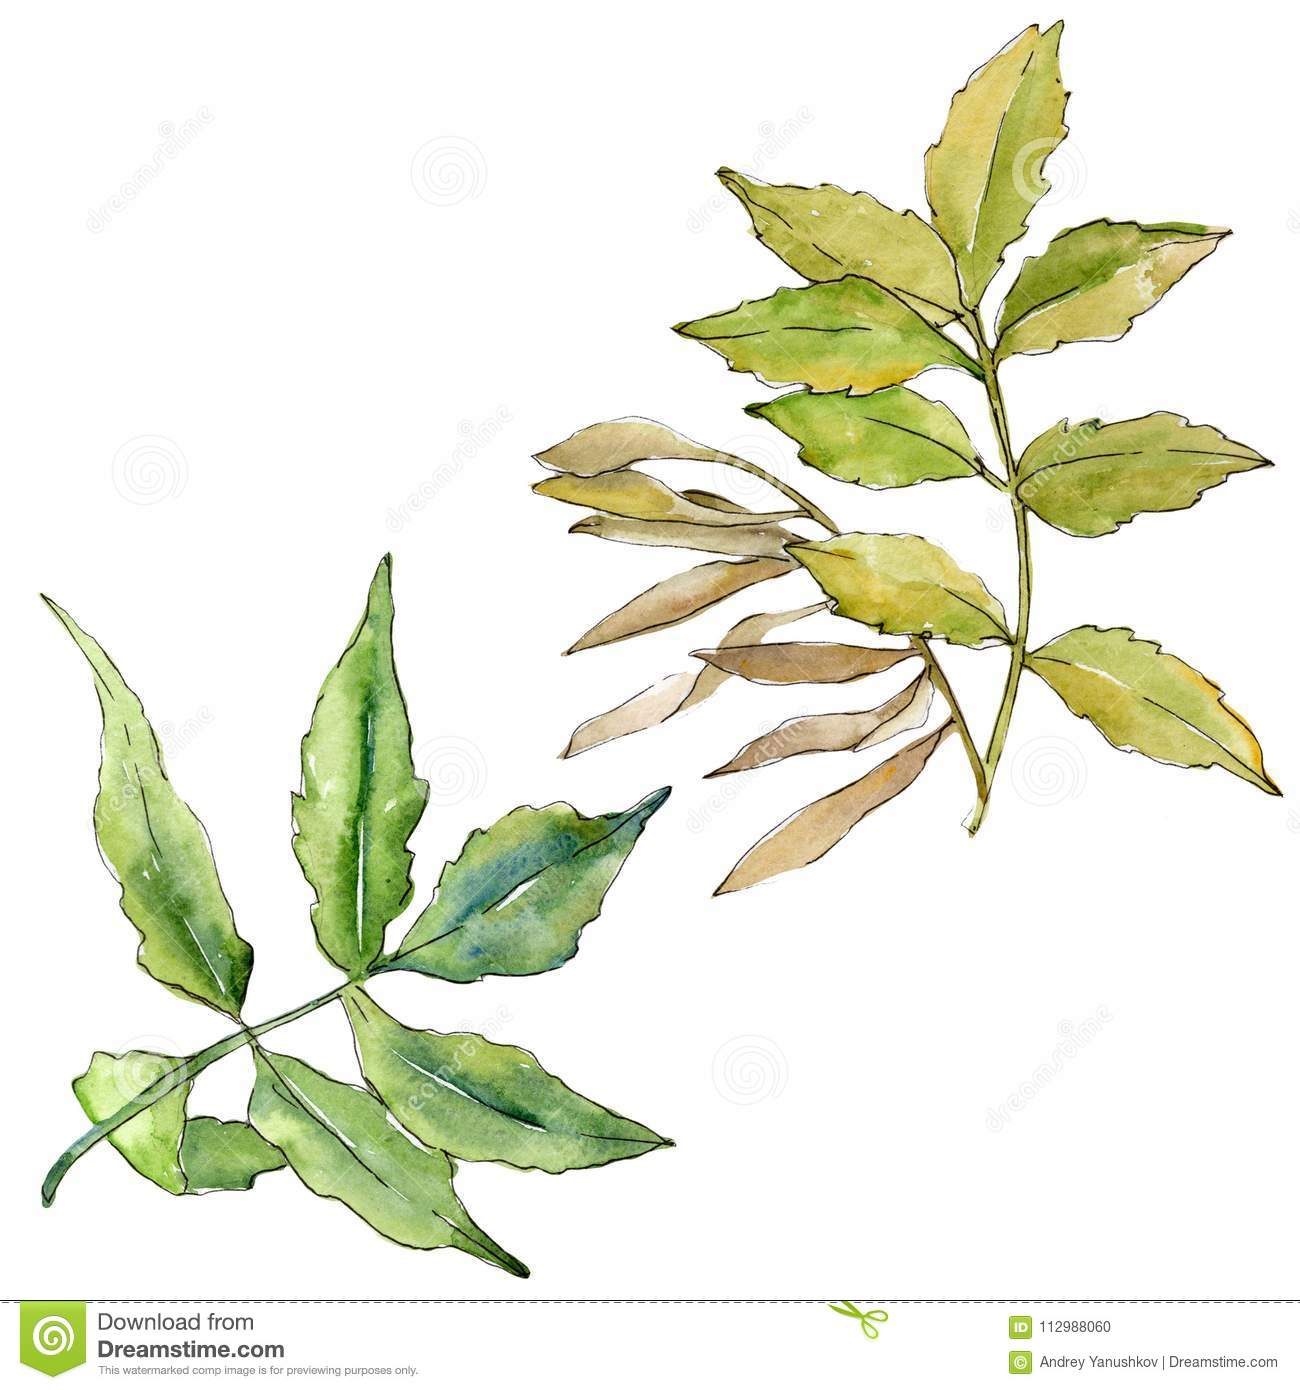 Ash leaves in a watercolor style isolated.